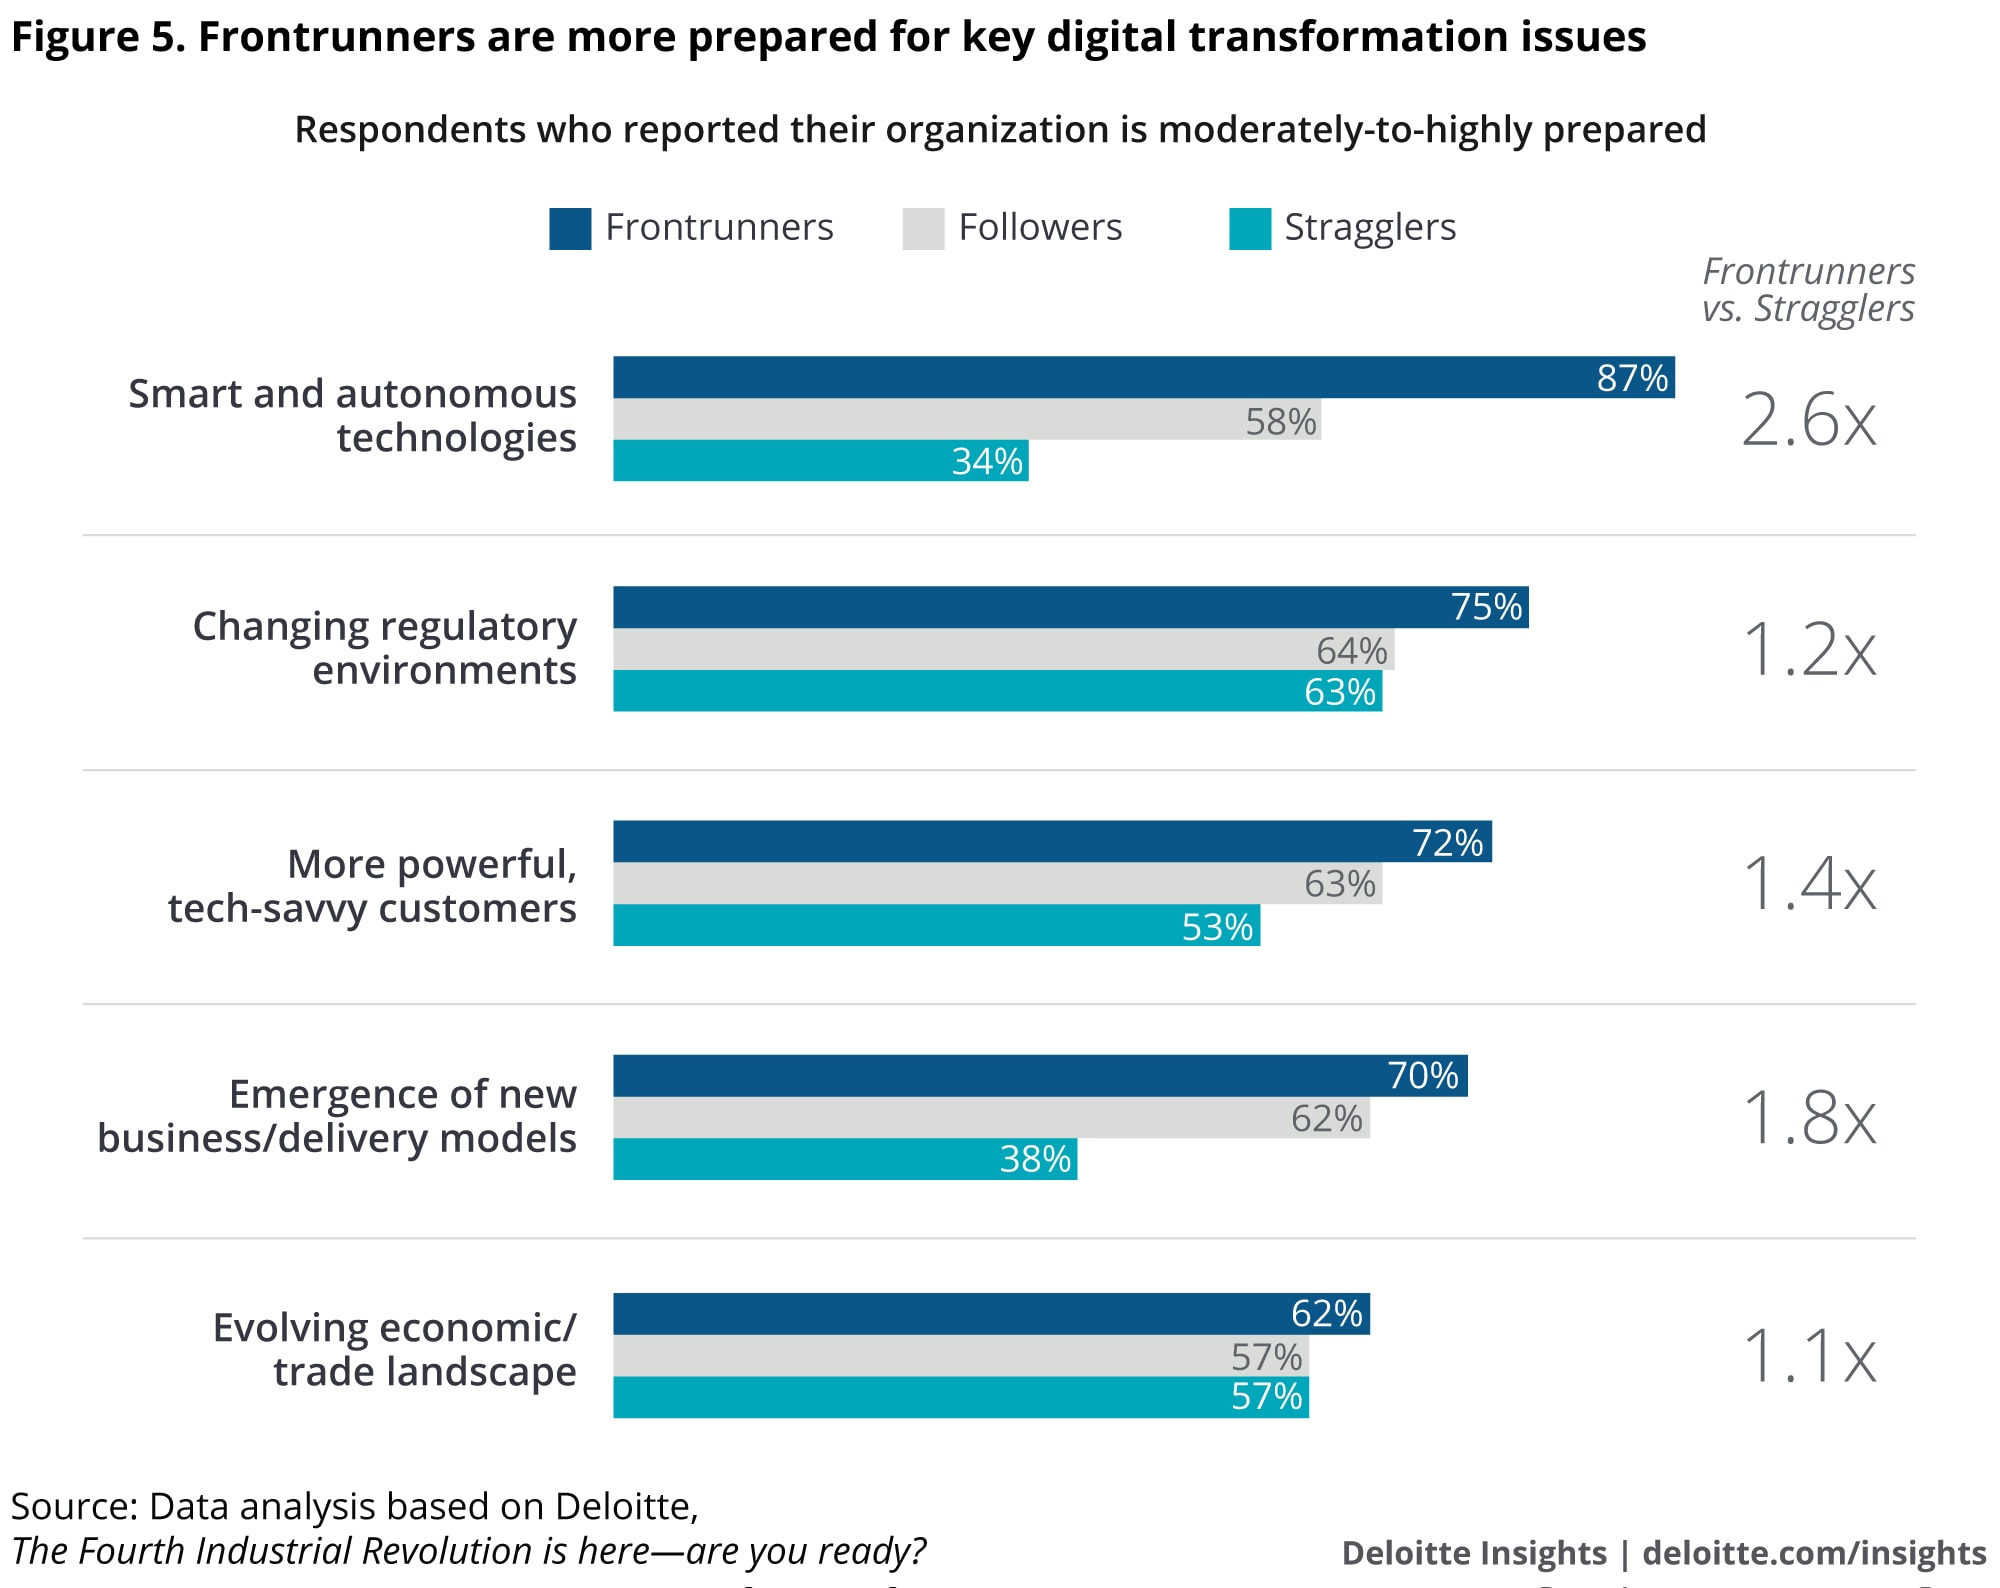 Frontrunners are more prepared for key digital transformation issues